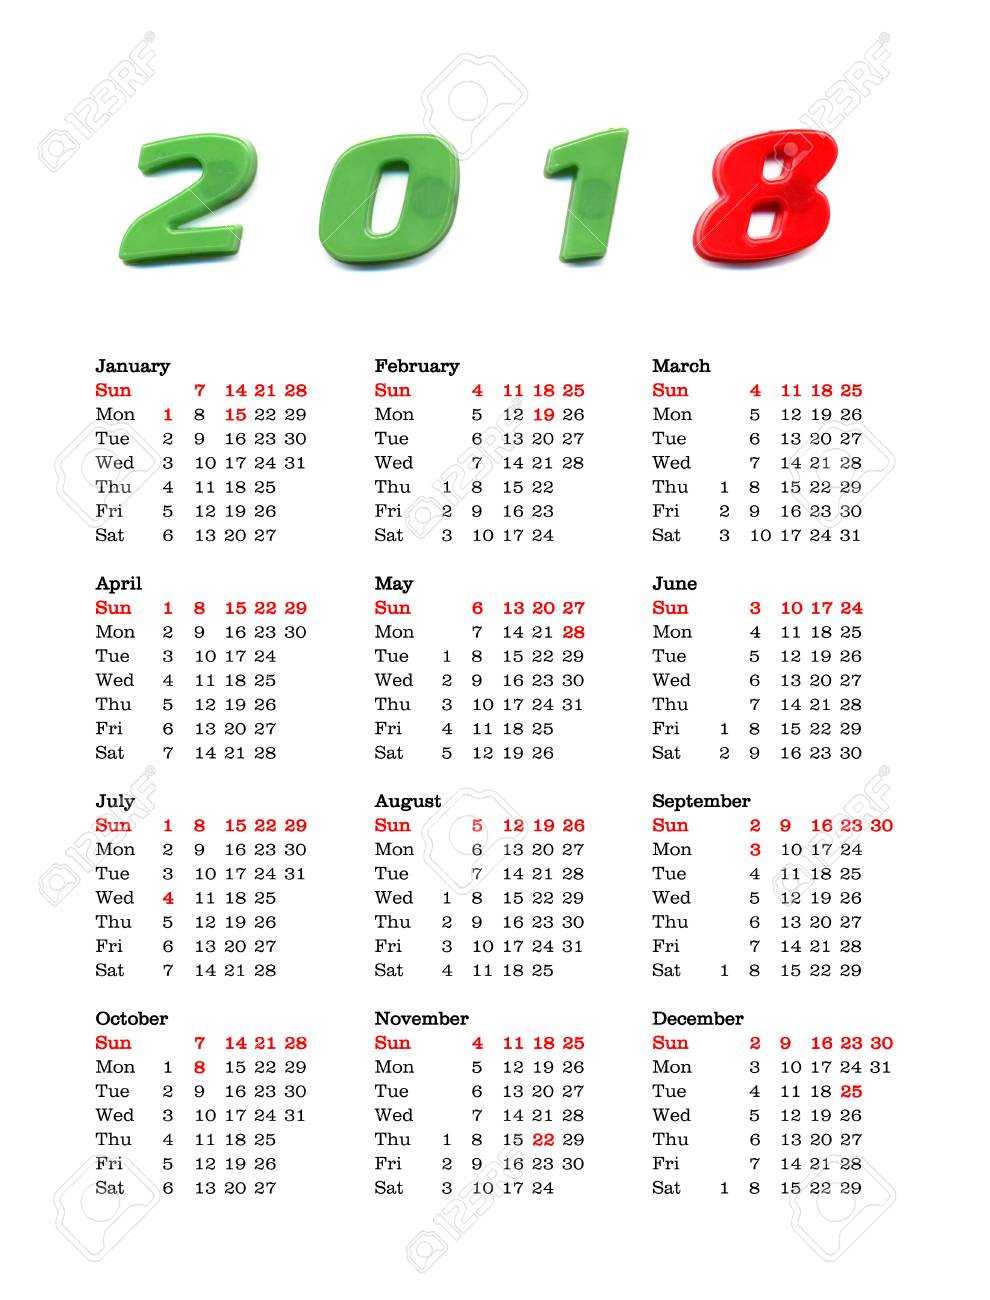 American Calendar Of Year 2018 With Public Holidays And Bank